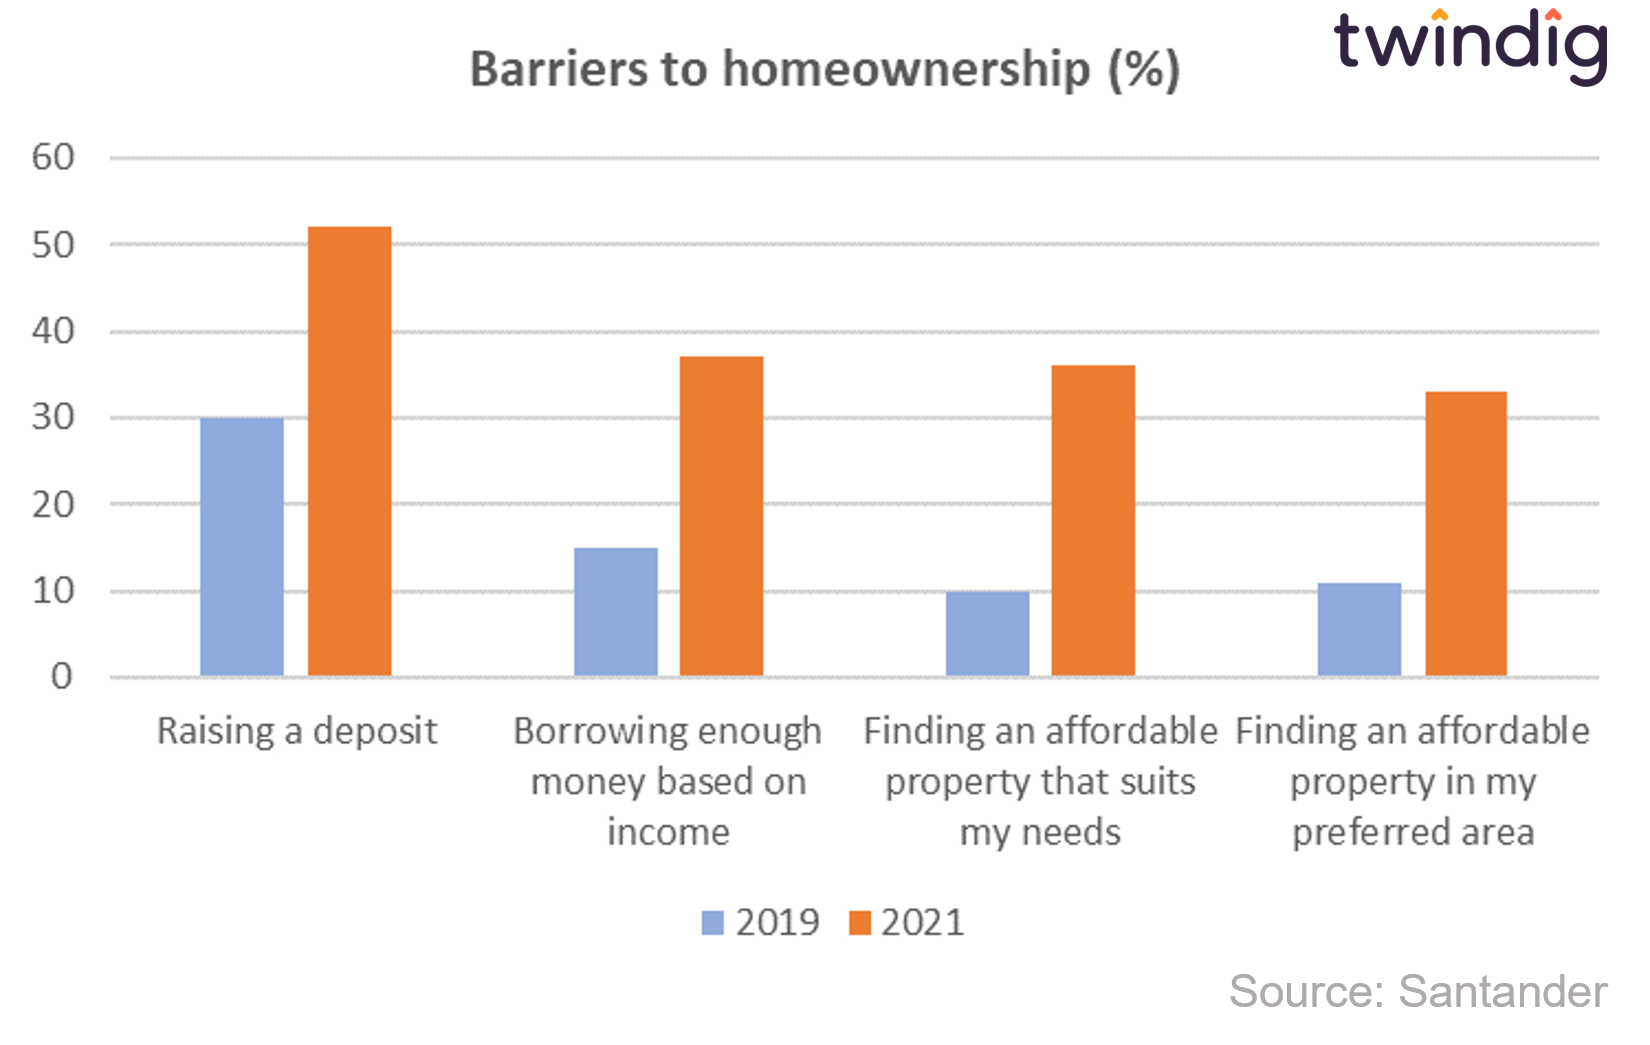 chart graph showing barriers to homeownership in the uk twindig anthony codling